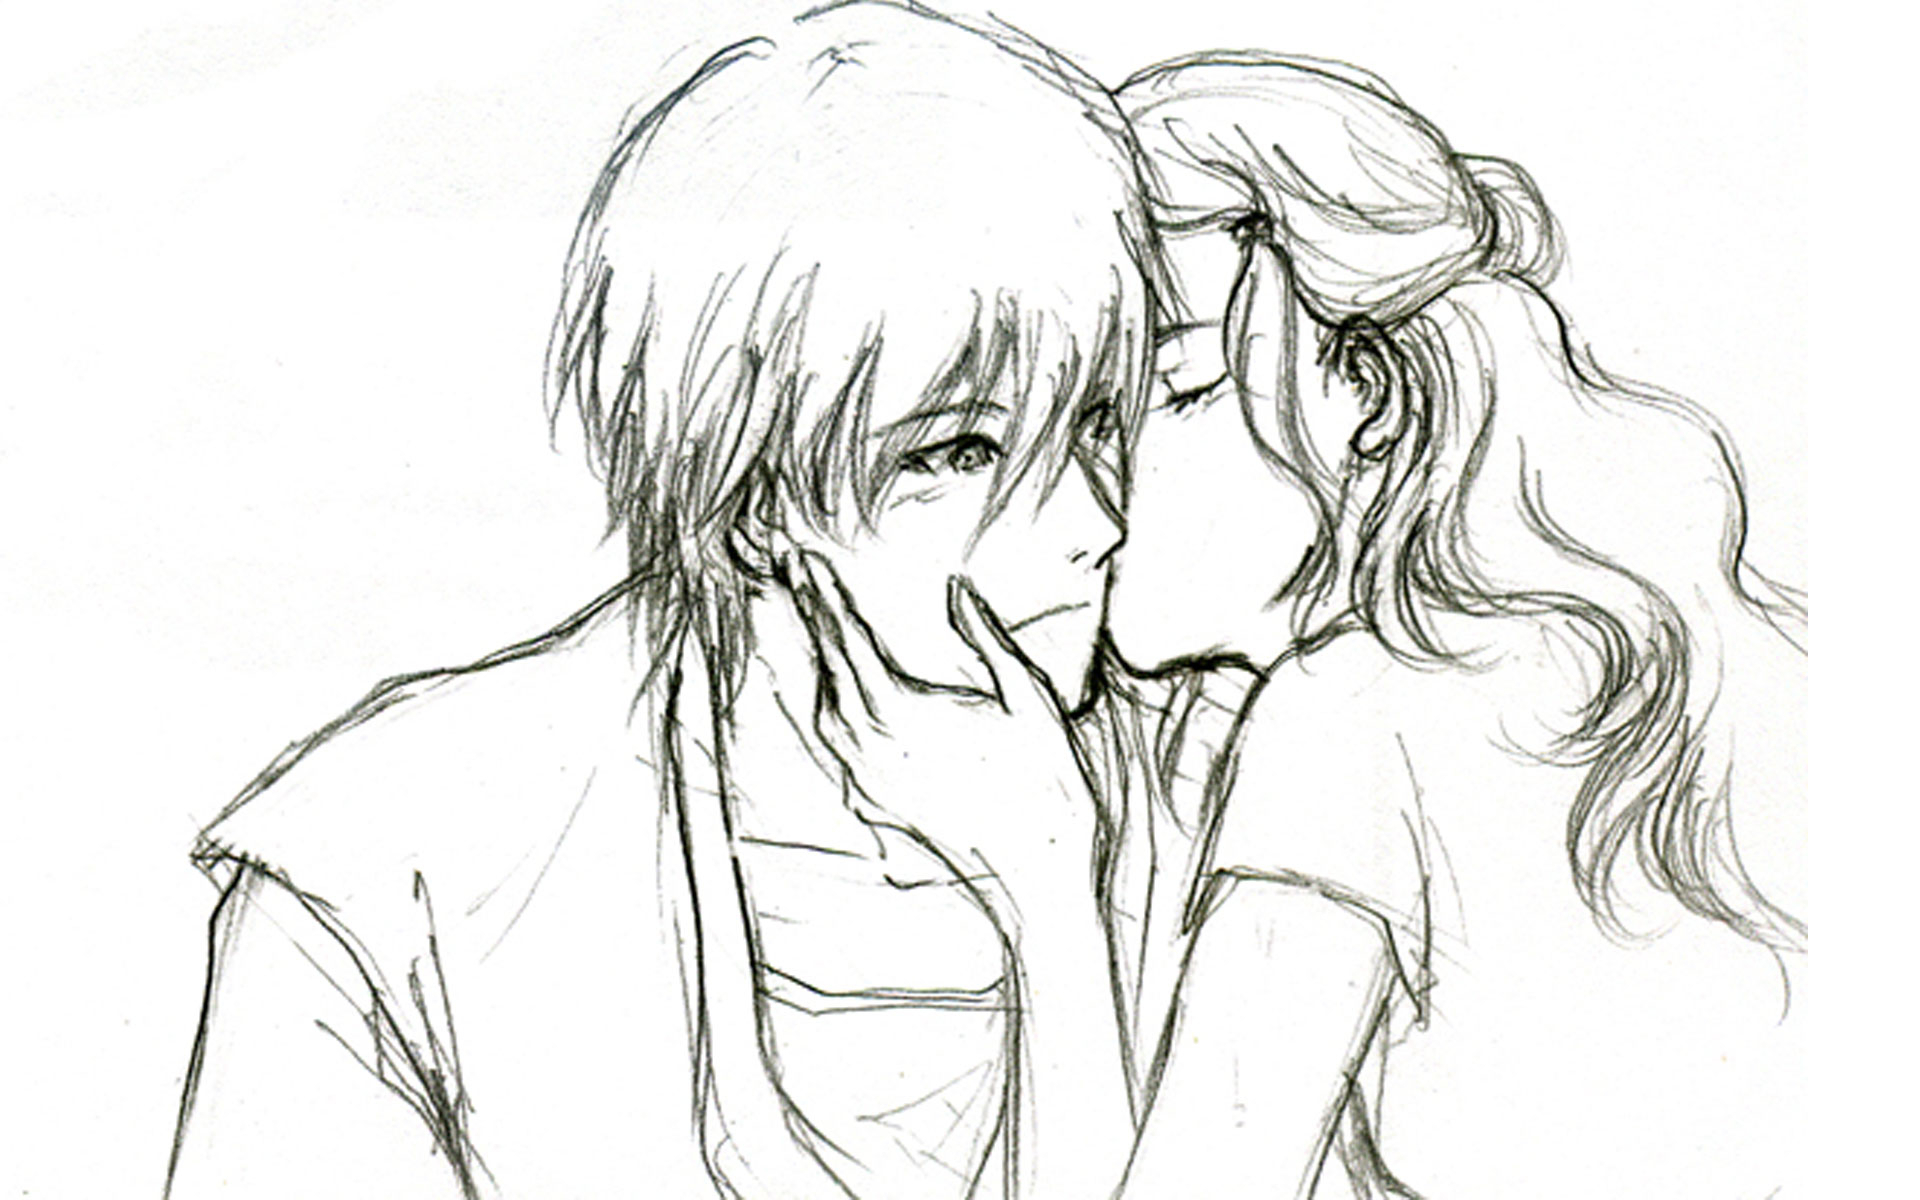 1920x1200 Boy And Girl Sketch Wallpaper Anime Sketch Boy And Girl Anime Boy